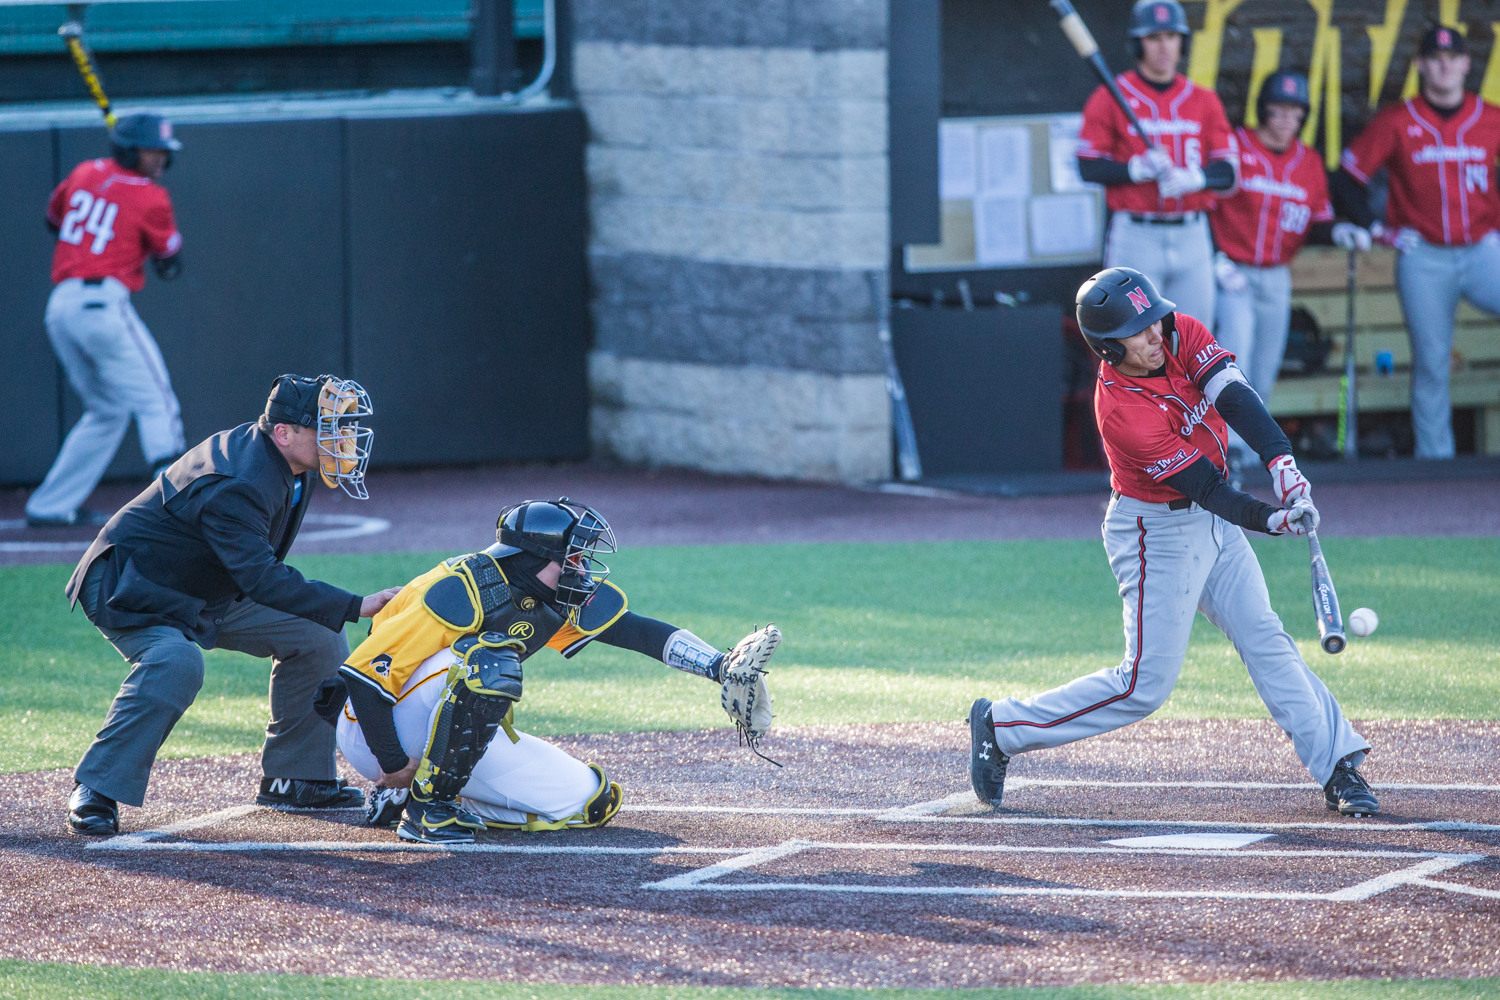 CSUN+infielder+Brandon+Bohning+makes+contact+during+the+second+game+of+a+baseball+doubleheader+between+Iowa+and+Cal-State+Northridge+at+Duane+Banks+Field+on+Sunday%2C+March+17%2C+2019.+The+Hawkeyes+took+the+series+by+defeating+the+Matadors%2C+3-1.